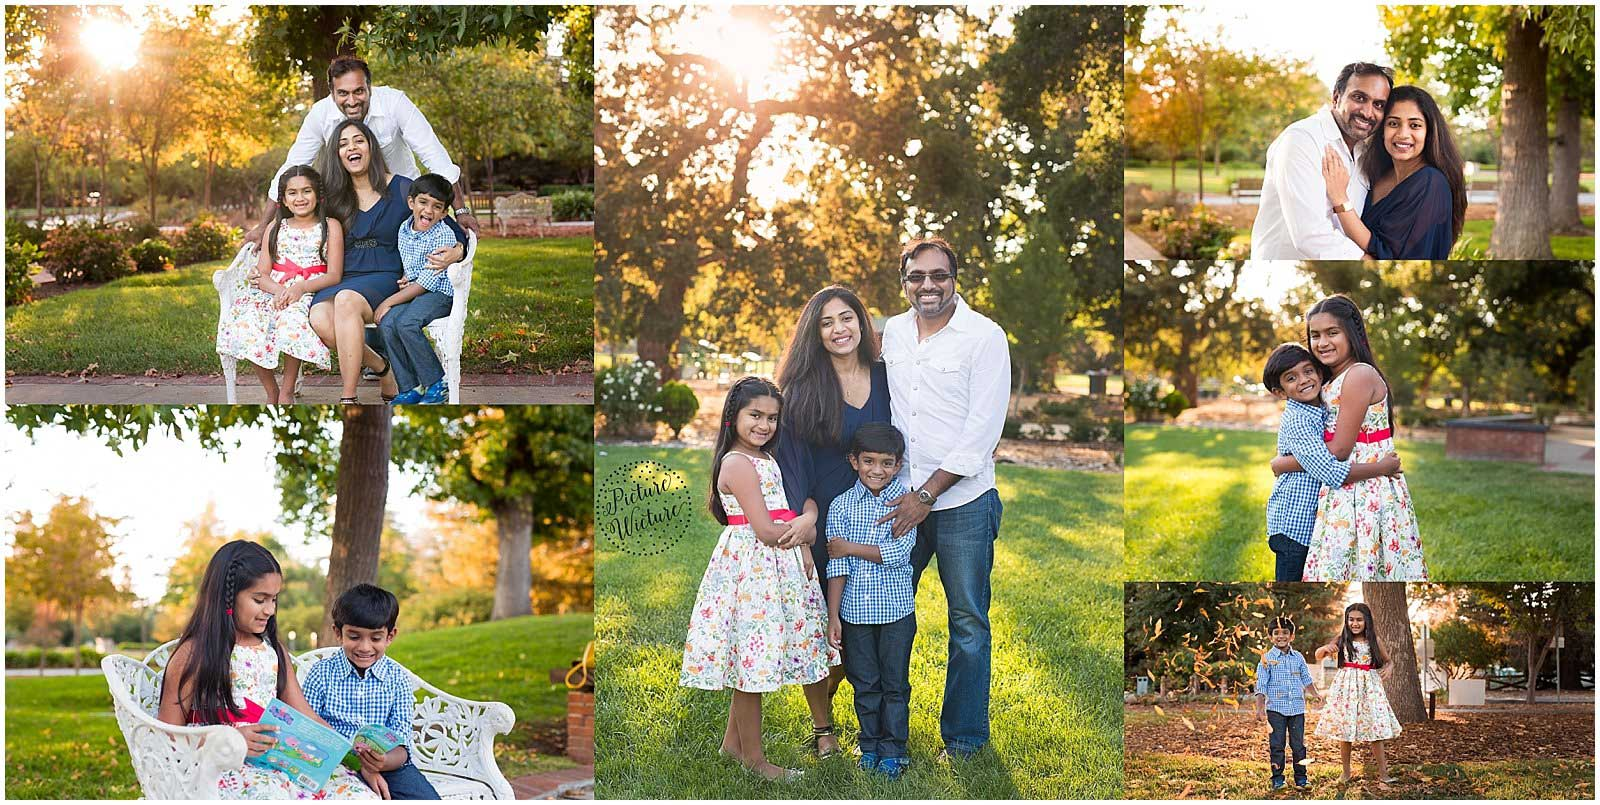 Menlo Park and Atherton Family Portraits in Holbrook-Palmer Park